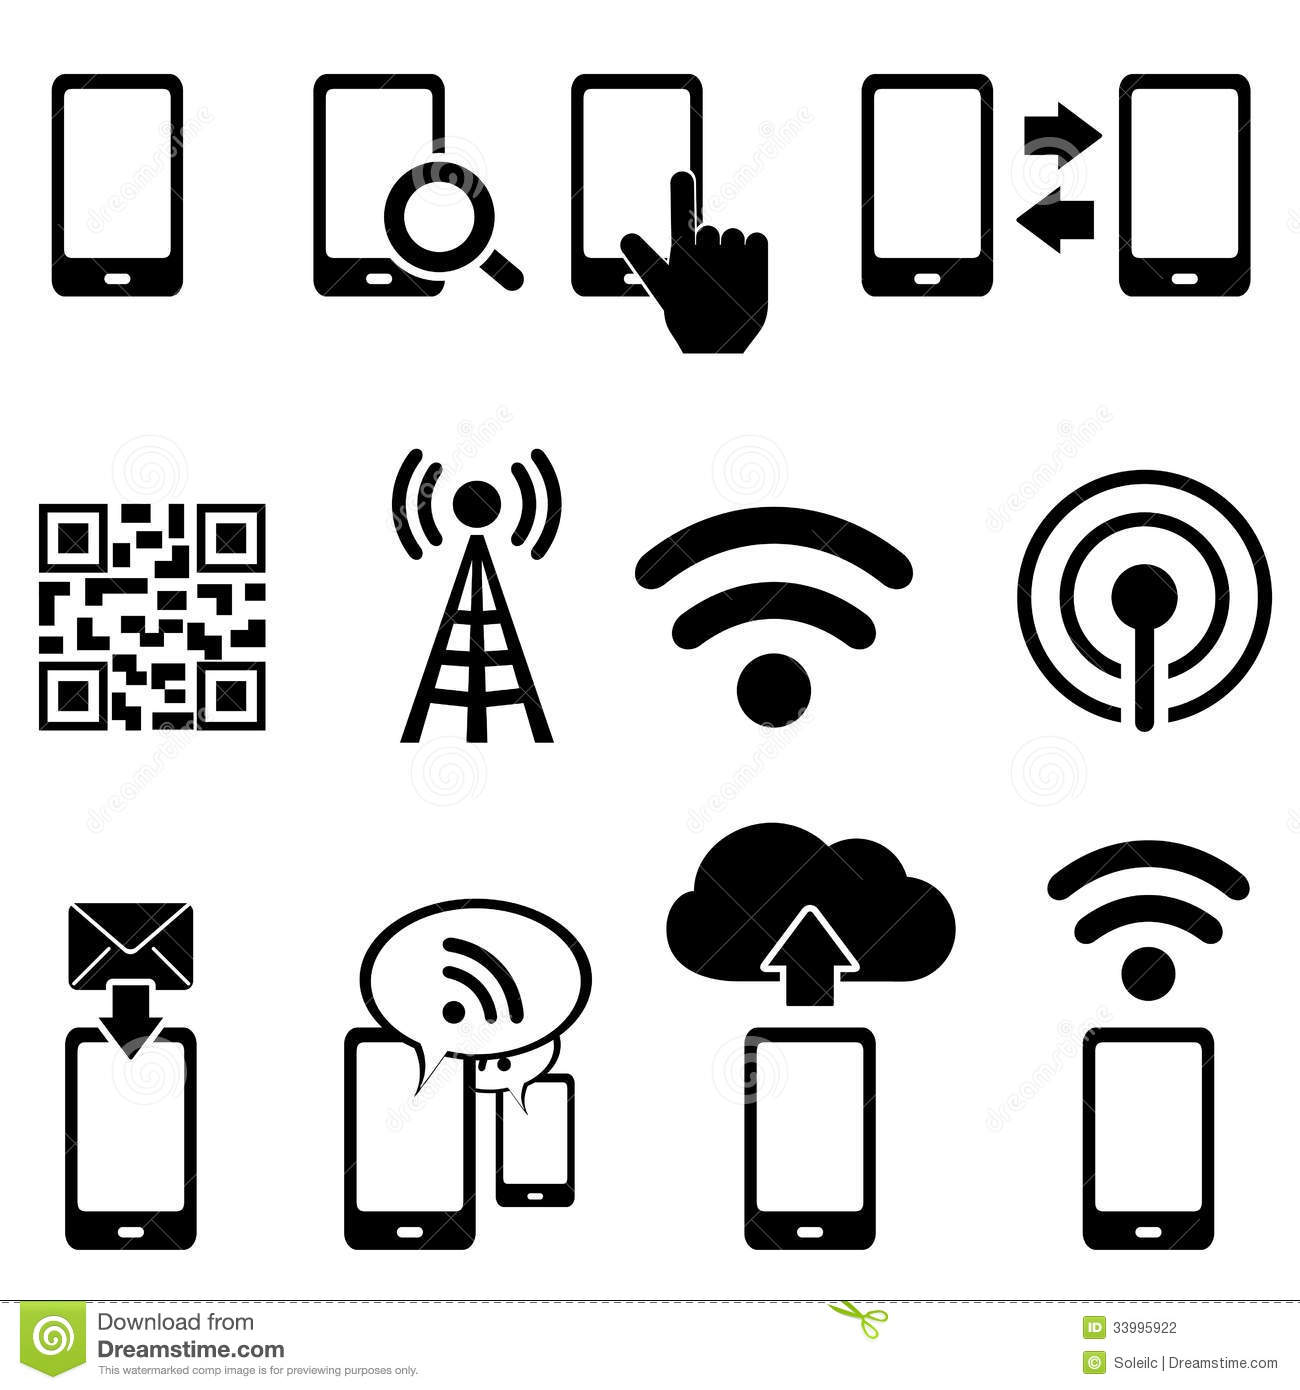 Stock Photo Selfie Taking Photos Smartphones Social Media Icons Set Vector People Selfies Mobile Cell Phones White Image41967321 besides Mobile Phone Auricular Part Outline With Call Sound Lines 734187 together with Sistema De Telefono Celular Con Auricular Y El Cable 731049 furthermore Clipart Phone 13 likewise Stock Vector Mobile Phone Drawing. on cell phone icon